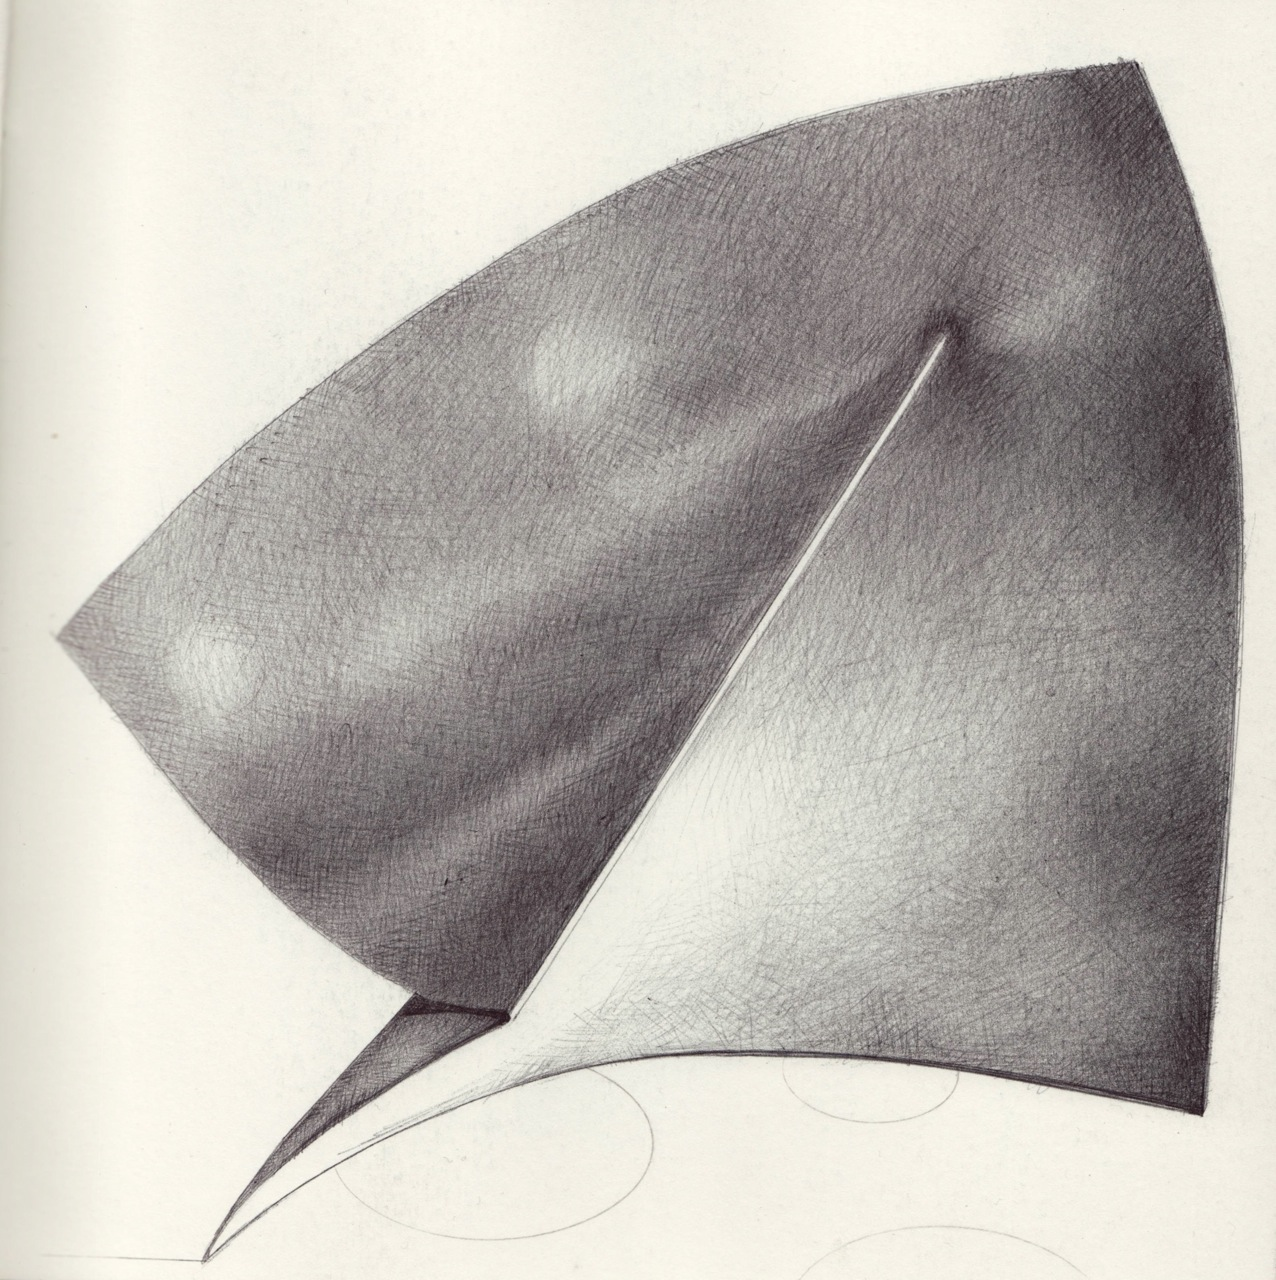 Artists book next phase ballpoint pen drawings exploring folding of paper art of origami